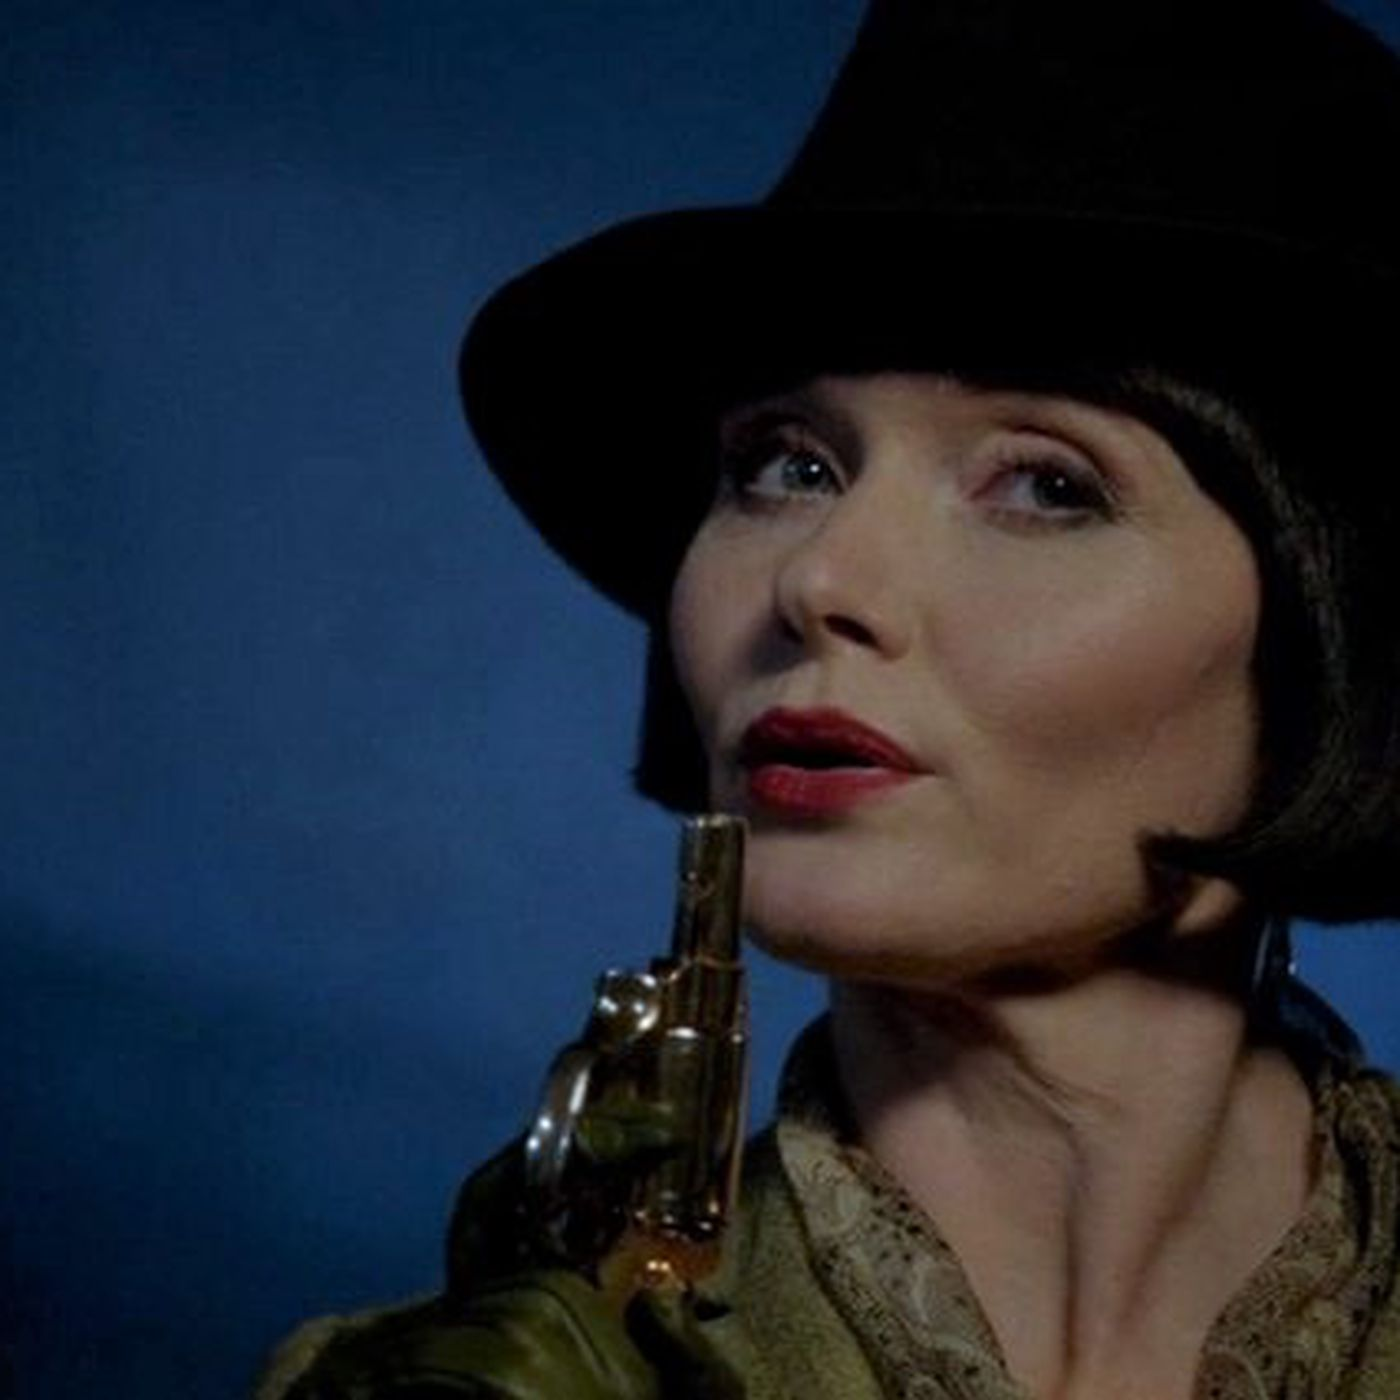 Miss Fisher and the Crypt of Tears: the movie will premiere